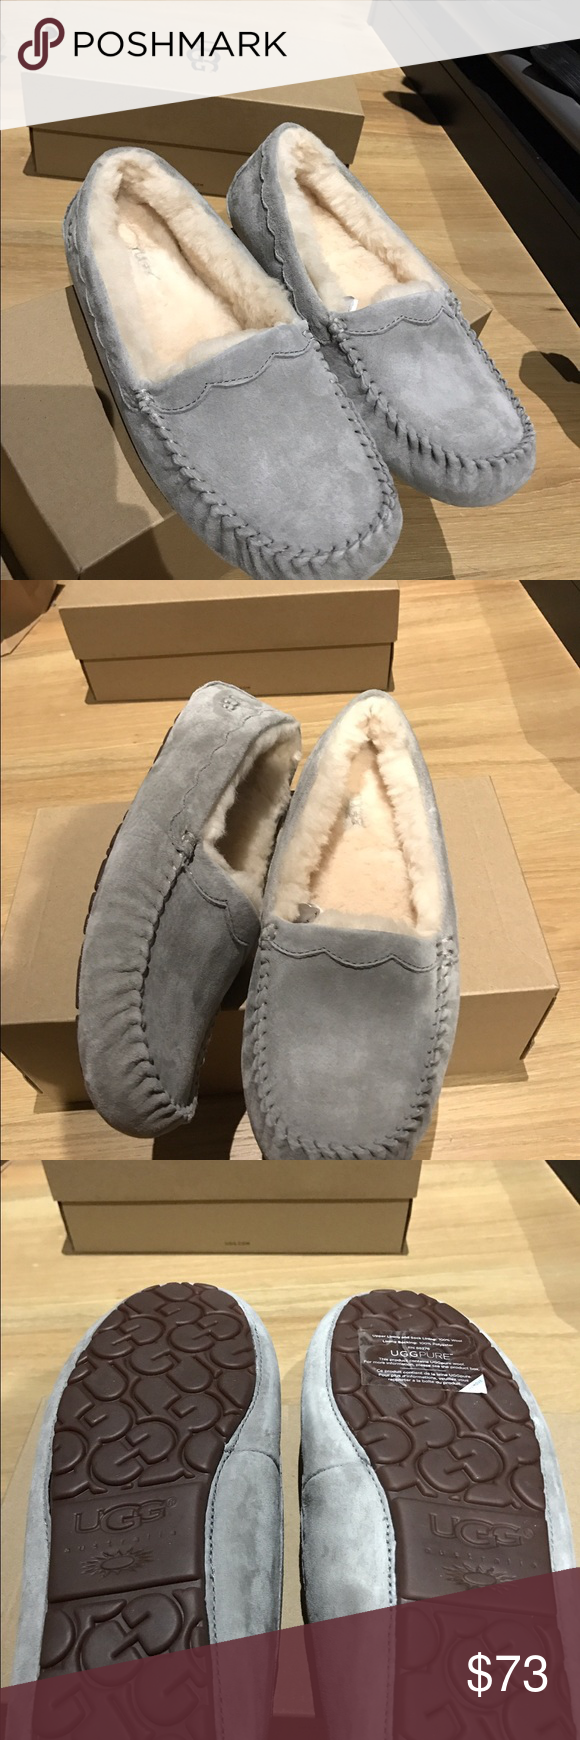 Ugg Ansley gray size 11 new with box Beautiful and cozy new ugg Ansley moccasins UGG Shoes Moccasins